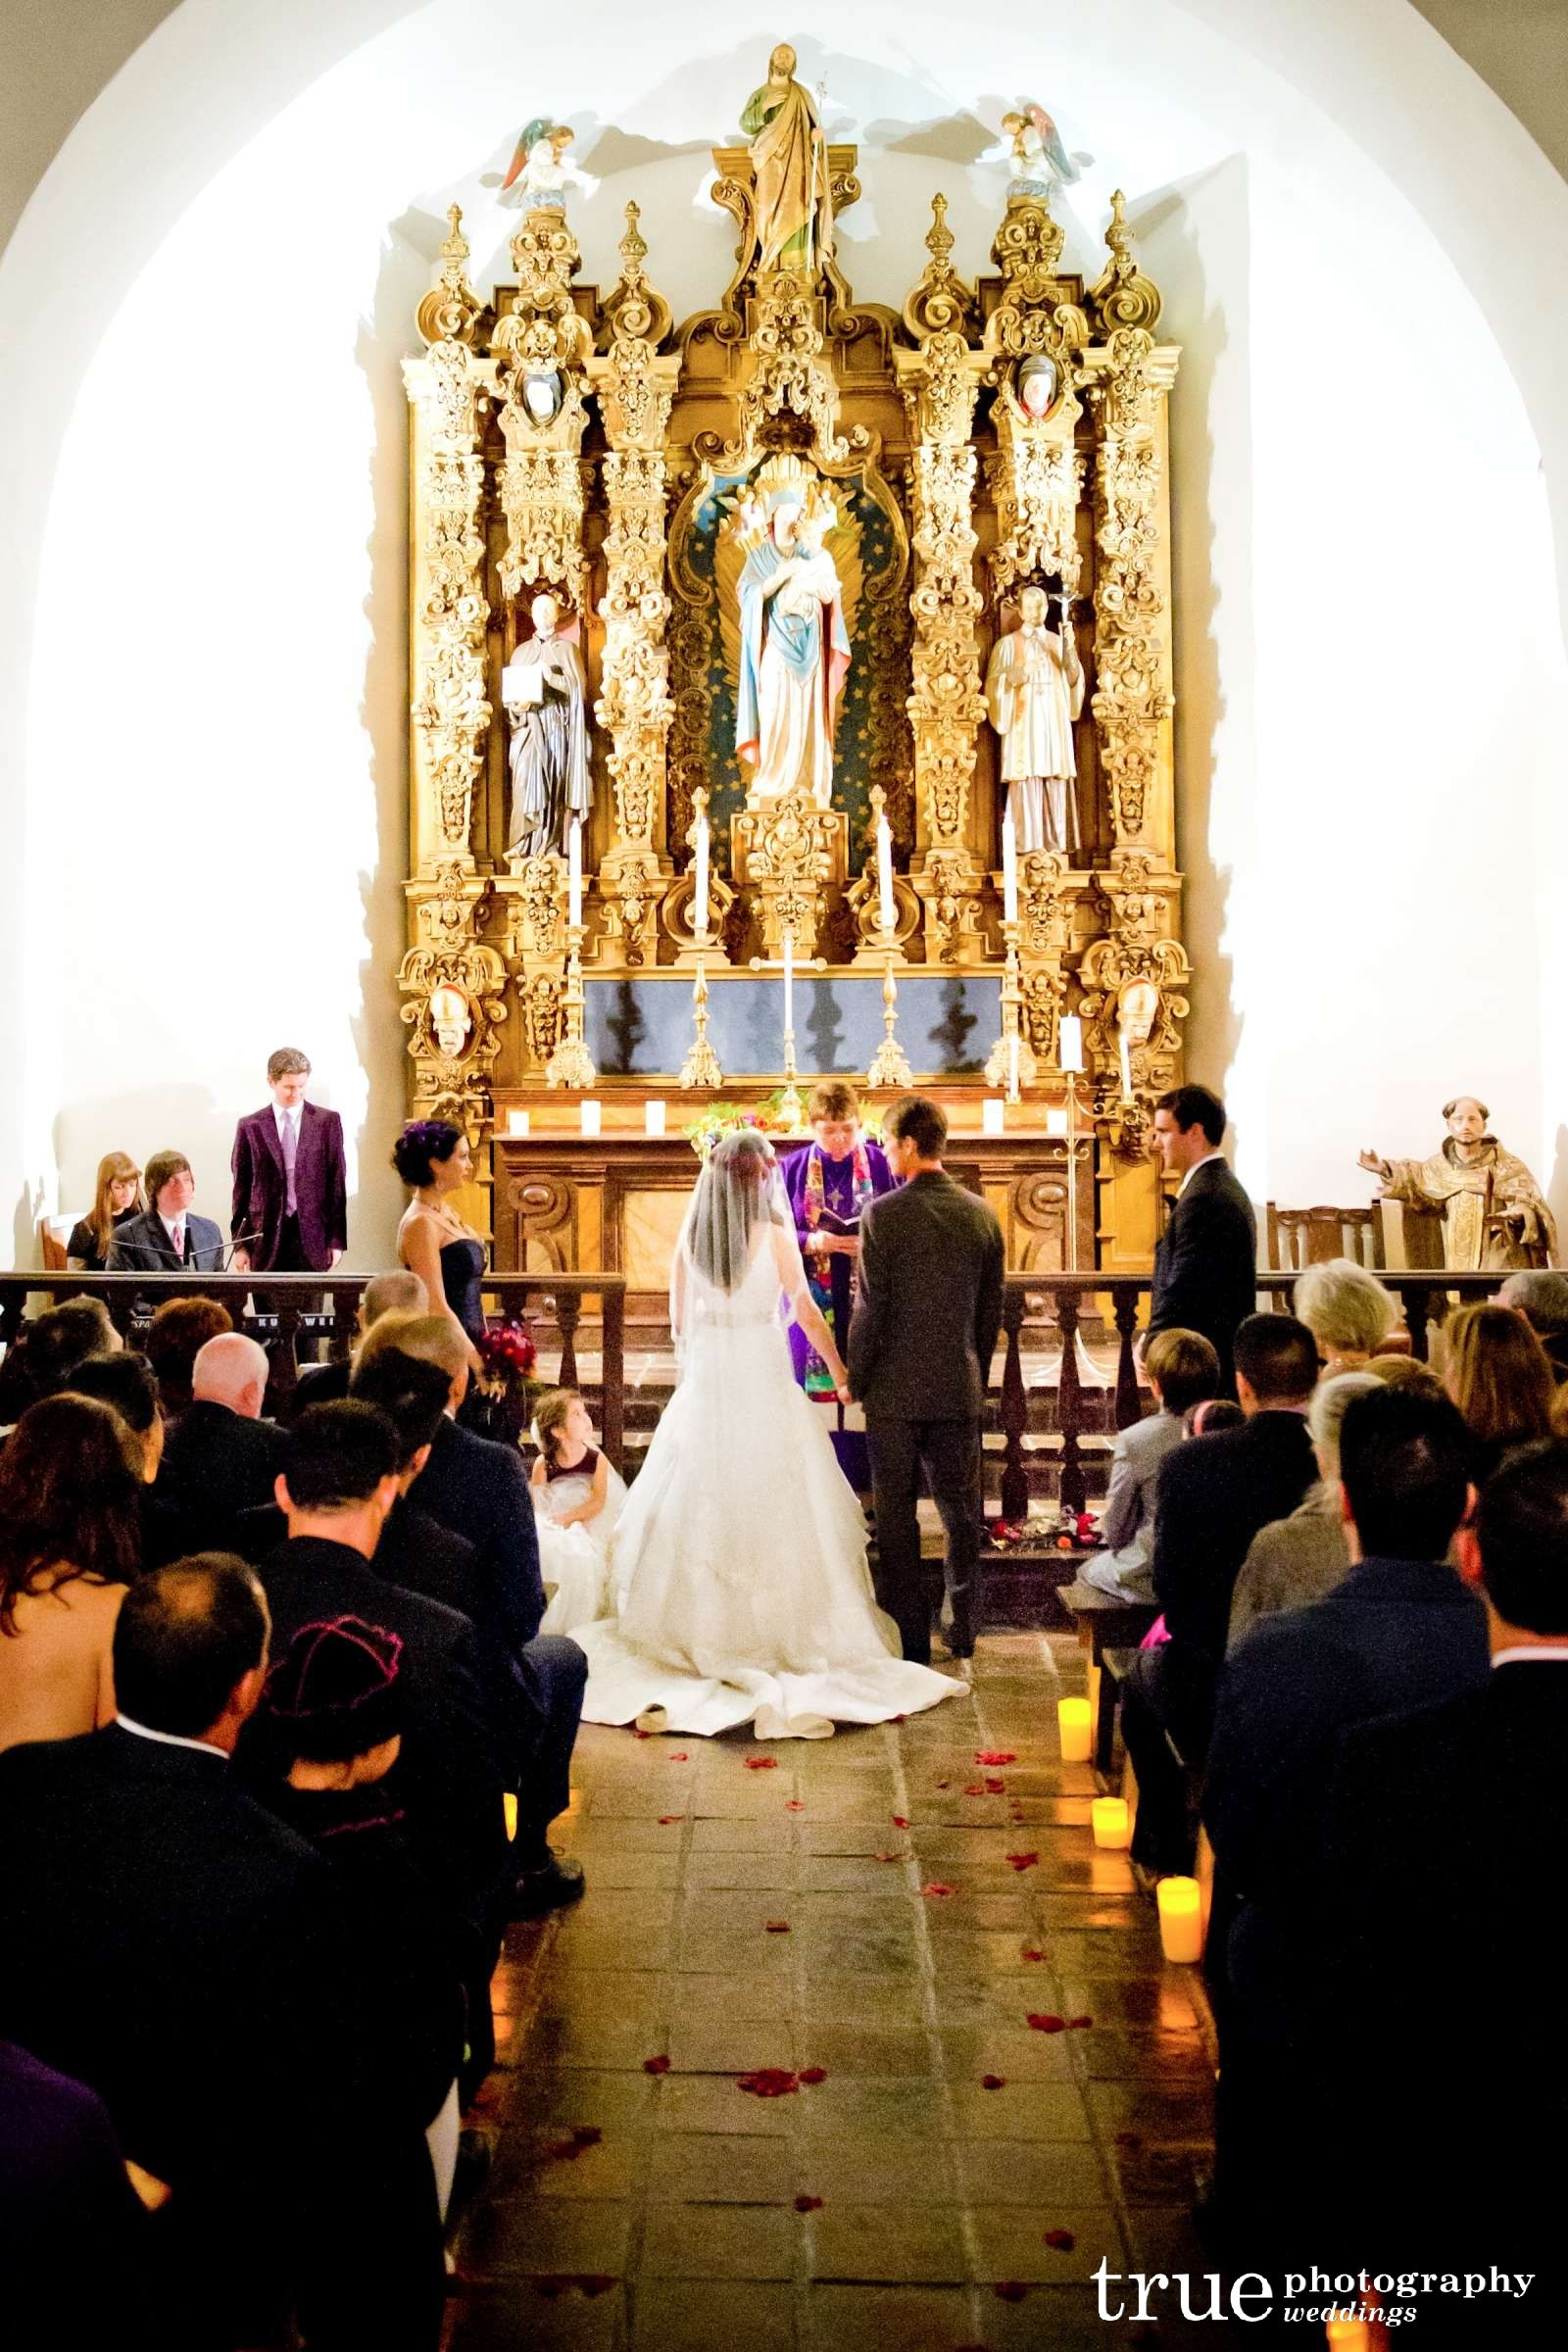 We Enjoy Photographing At Saint Francis Chapel A Popular And Visually Striking San Diego Wedding Venue In Historic Balboa Park